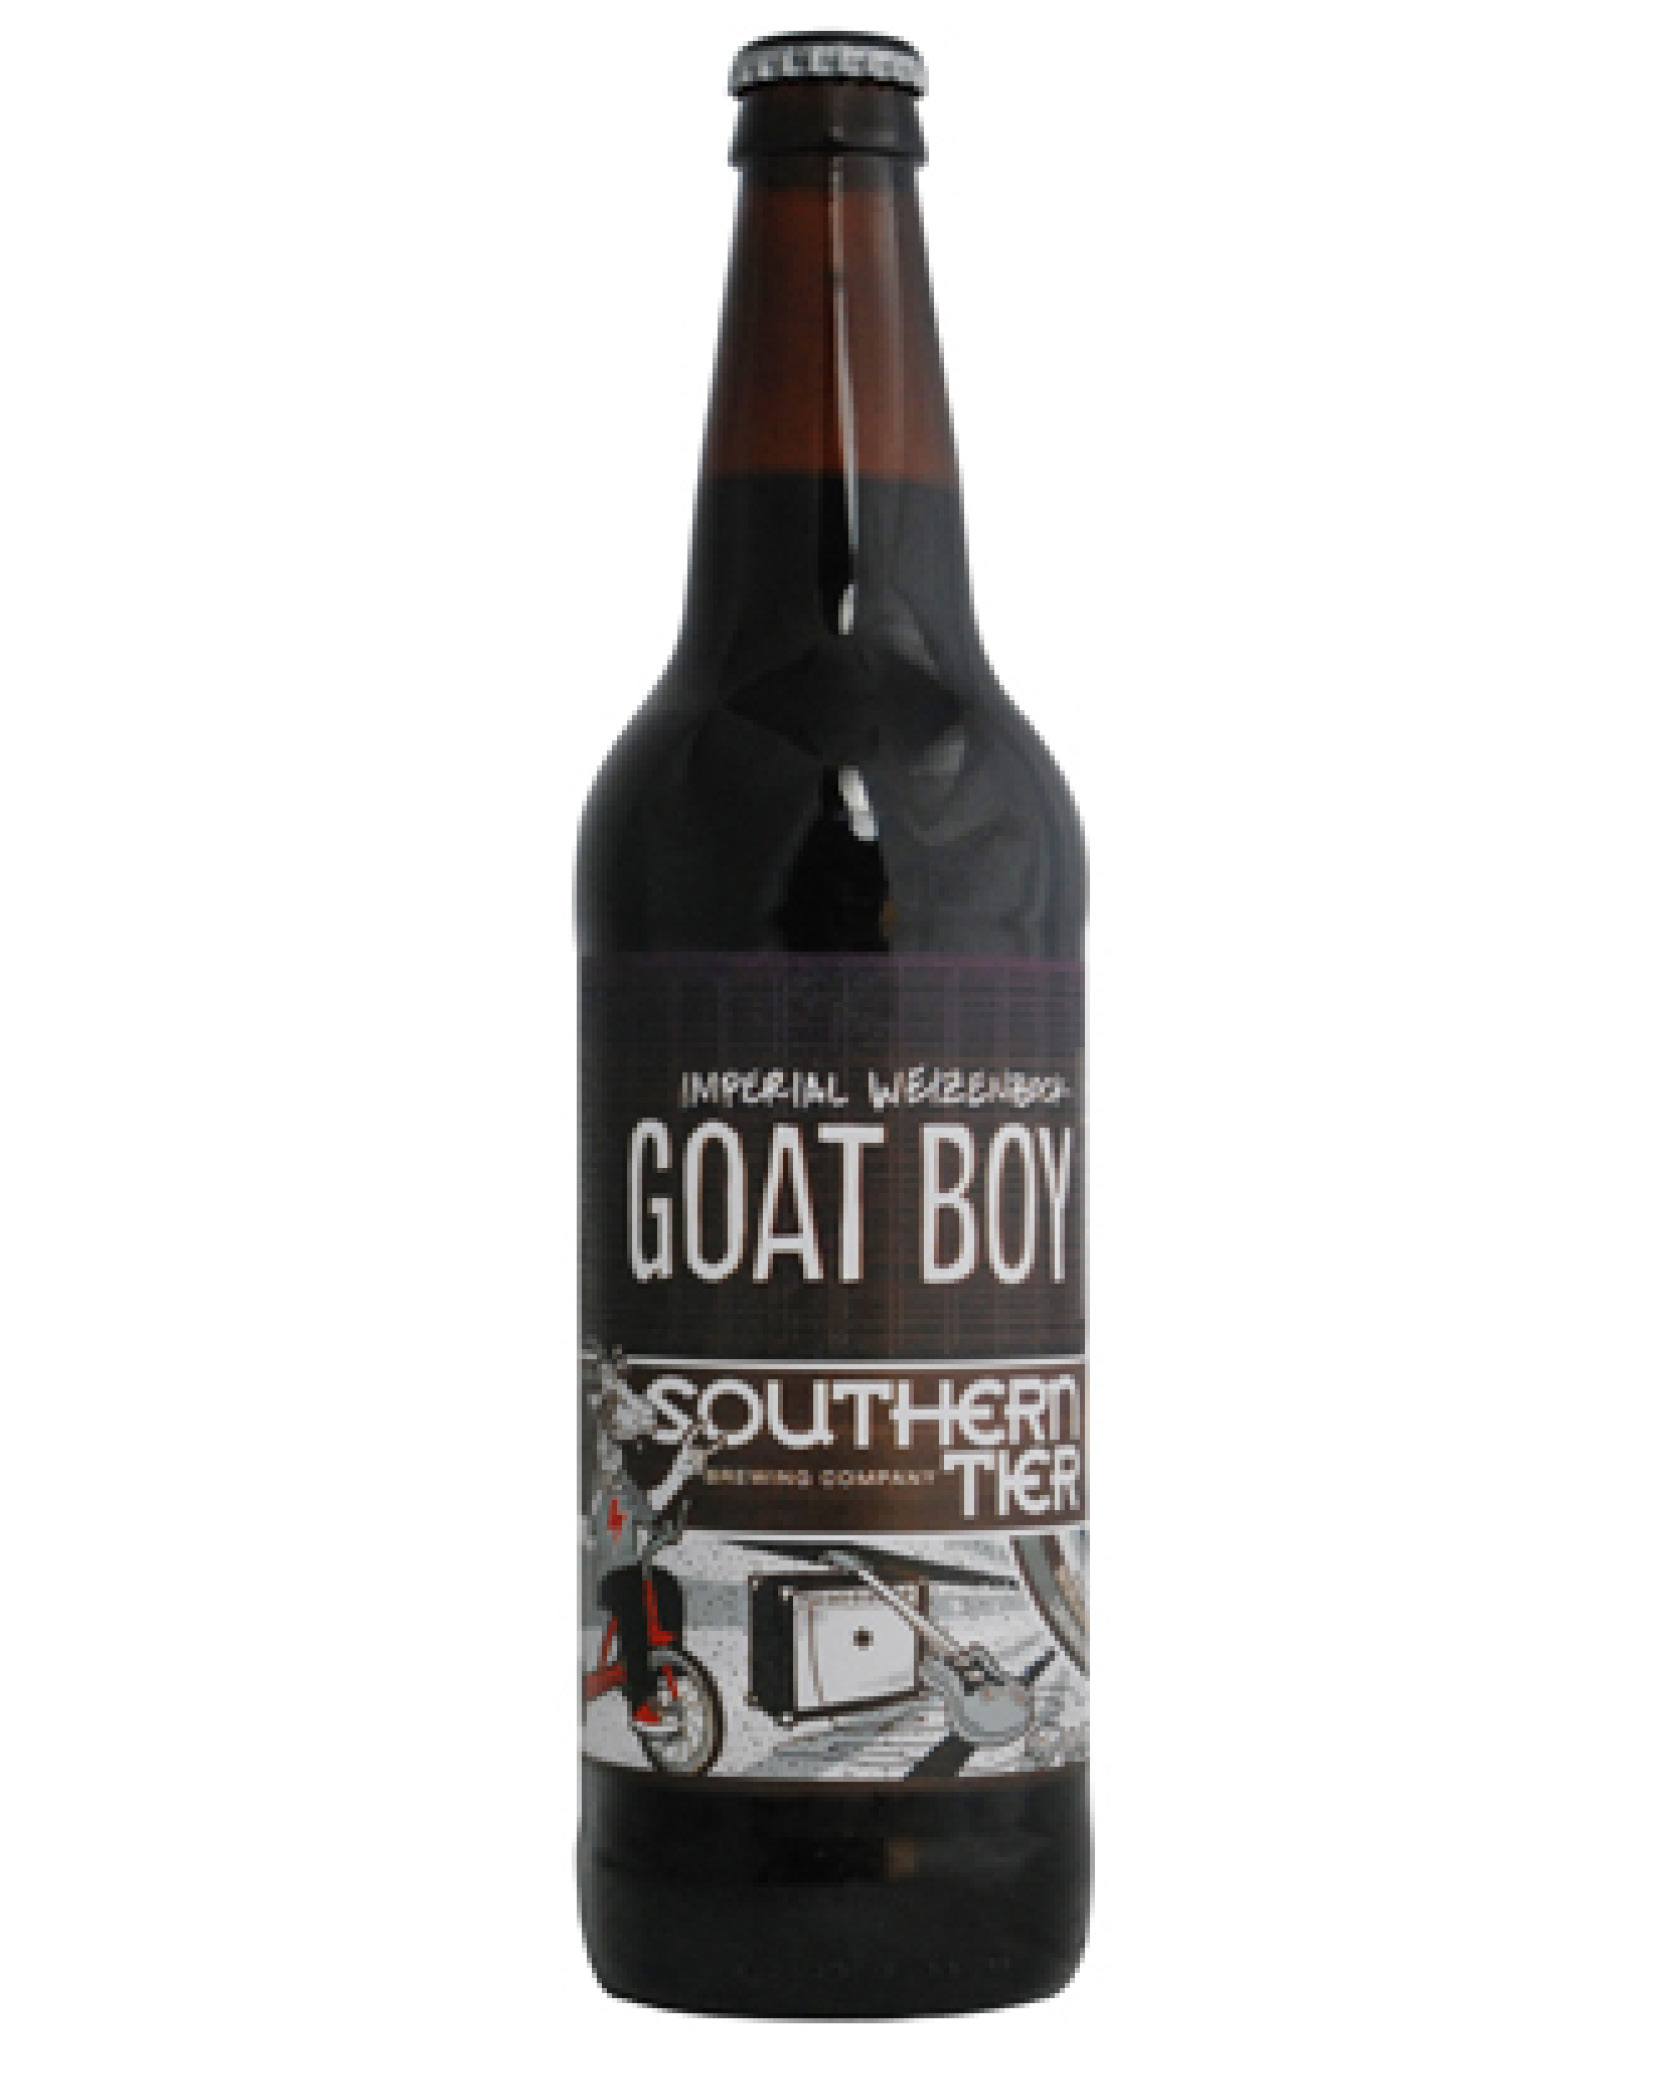 Southern Tier Goat Boy